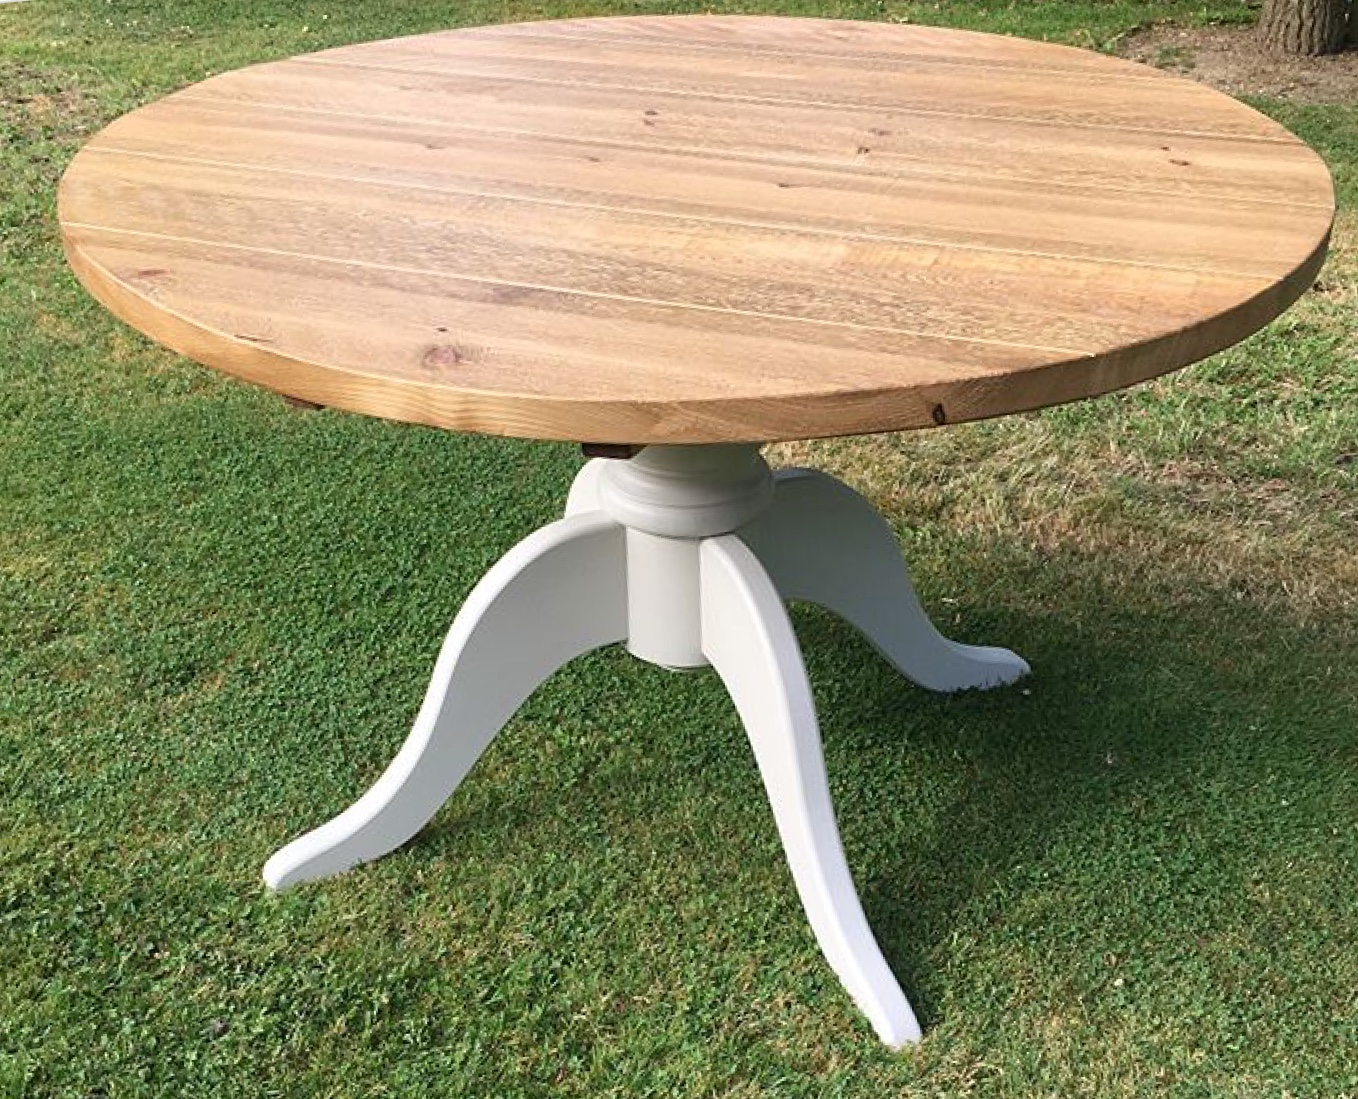 Pedestal table legs